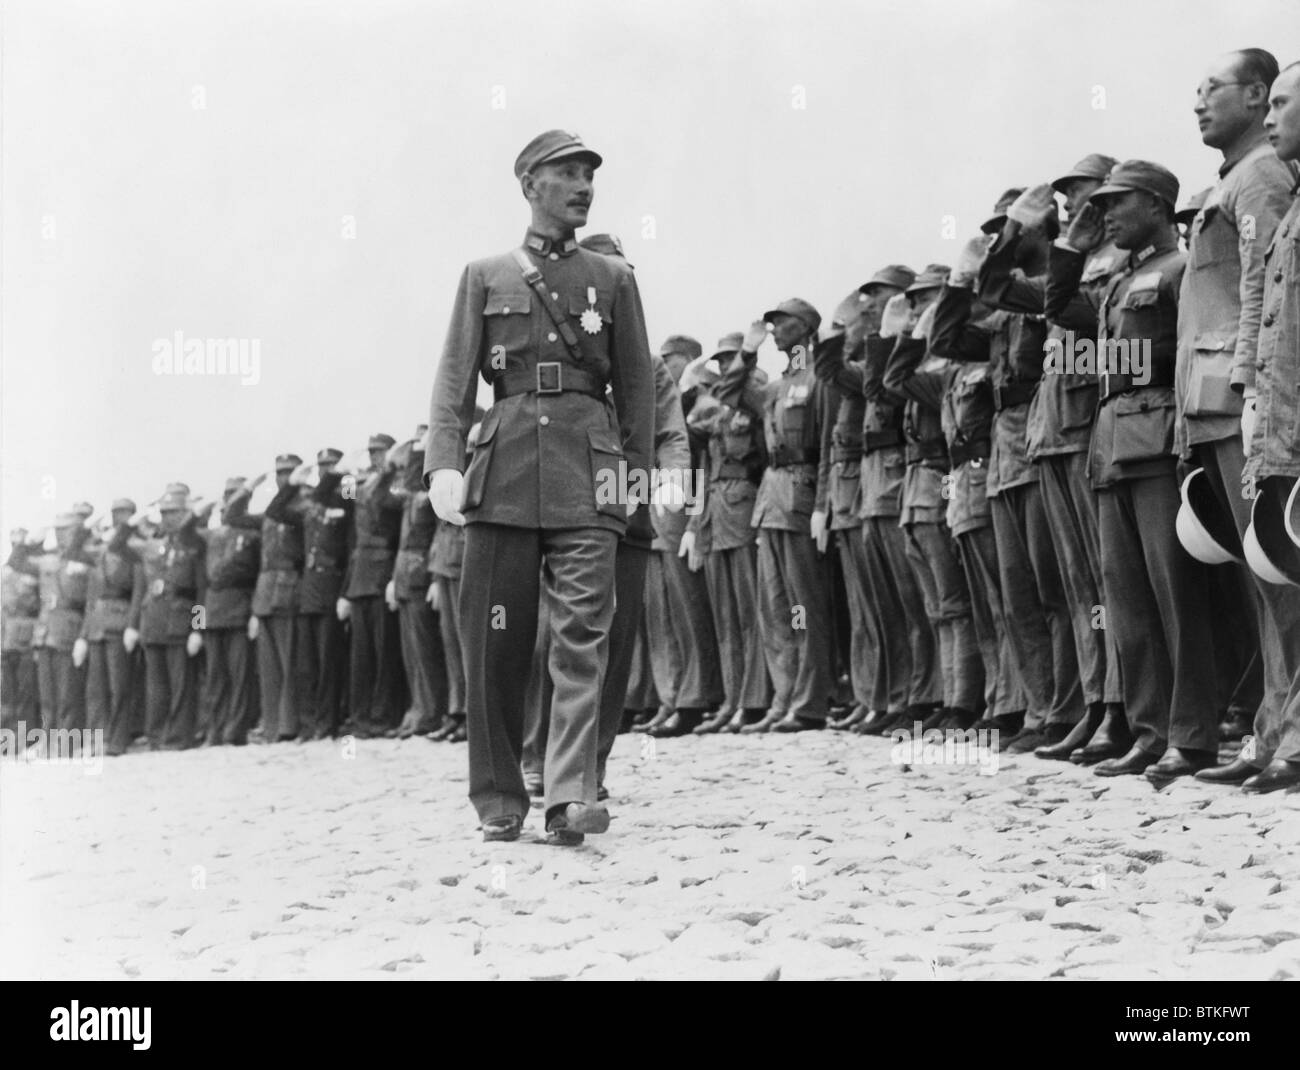 Chiang Kai-shek (1887-1975), inspecting high-ranking officers of Officers Training Corps at Jiangxi city in Lushan, - Stock Image